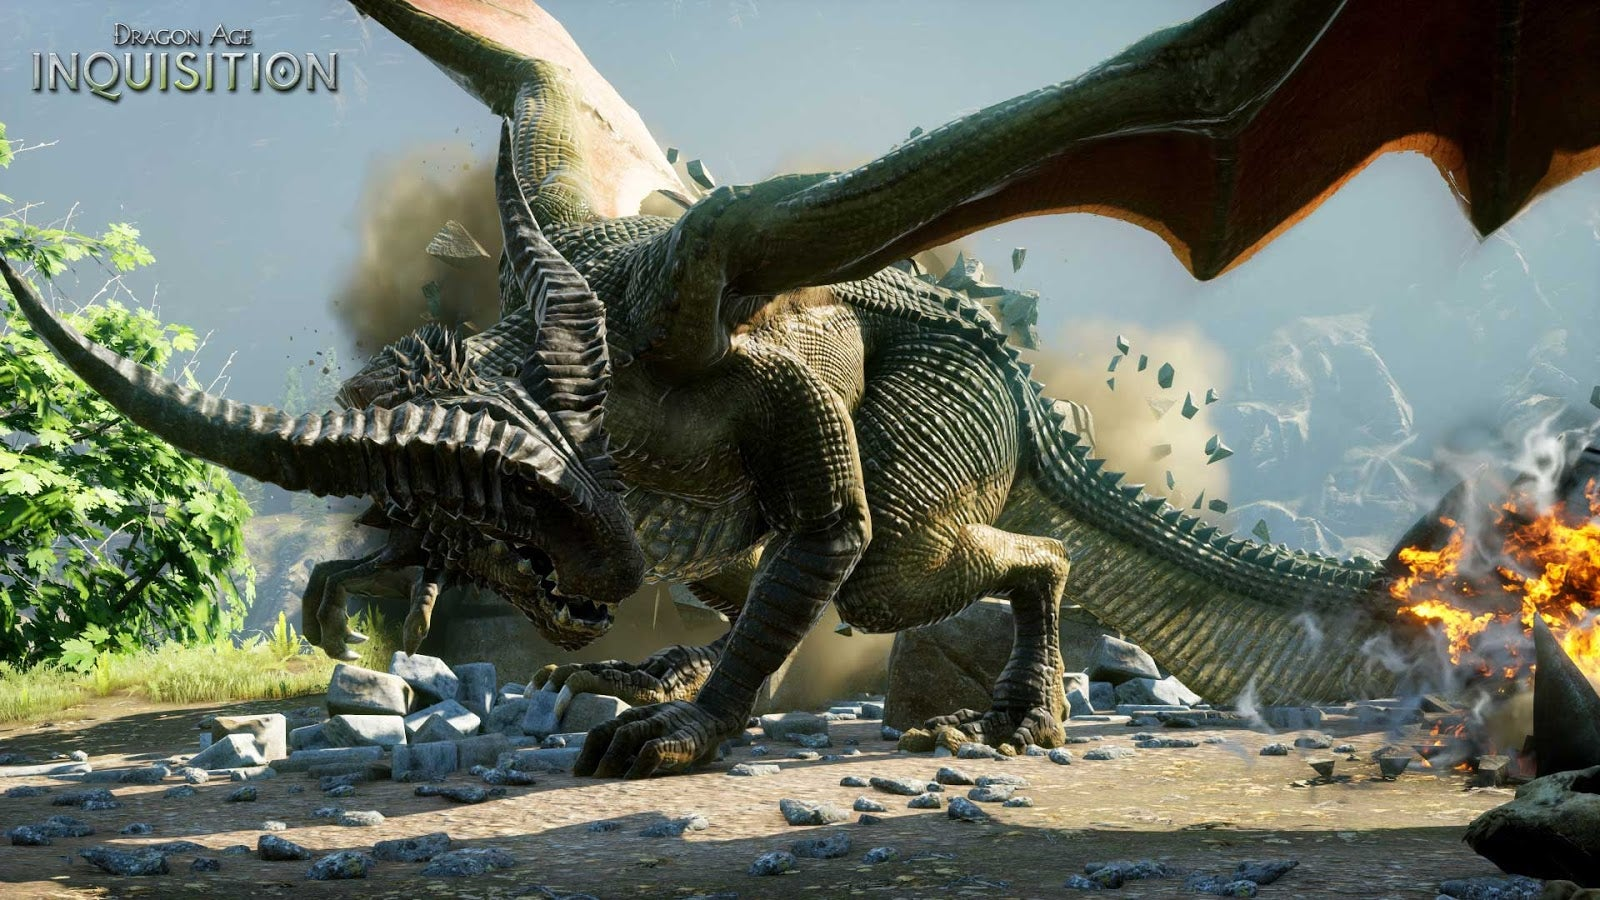 Dragon Age Inquisition's Next DLC Will Be For Current-Gen Consoles Only